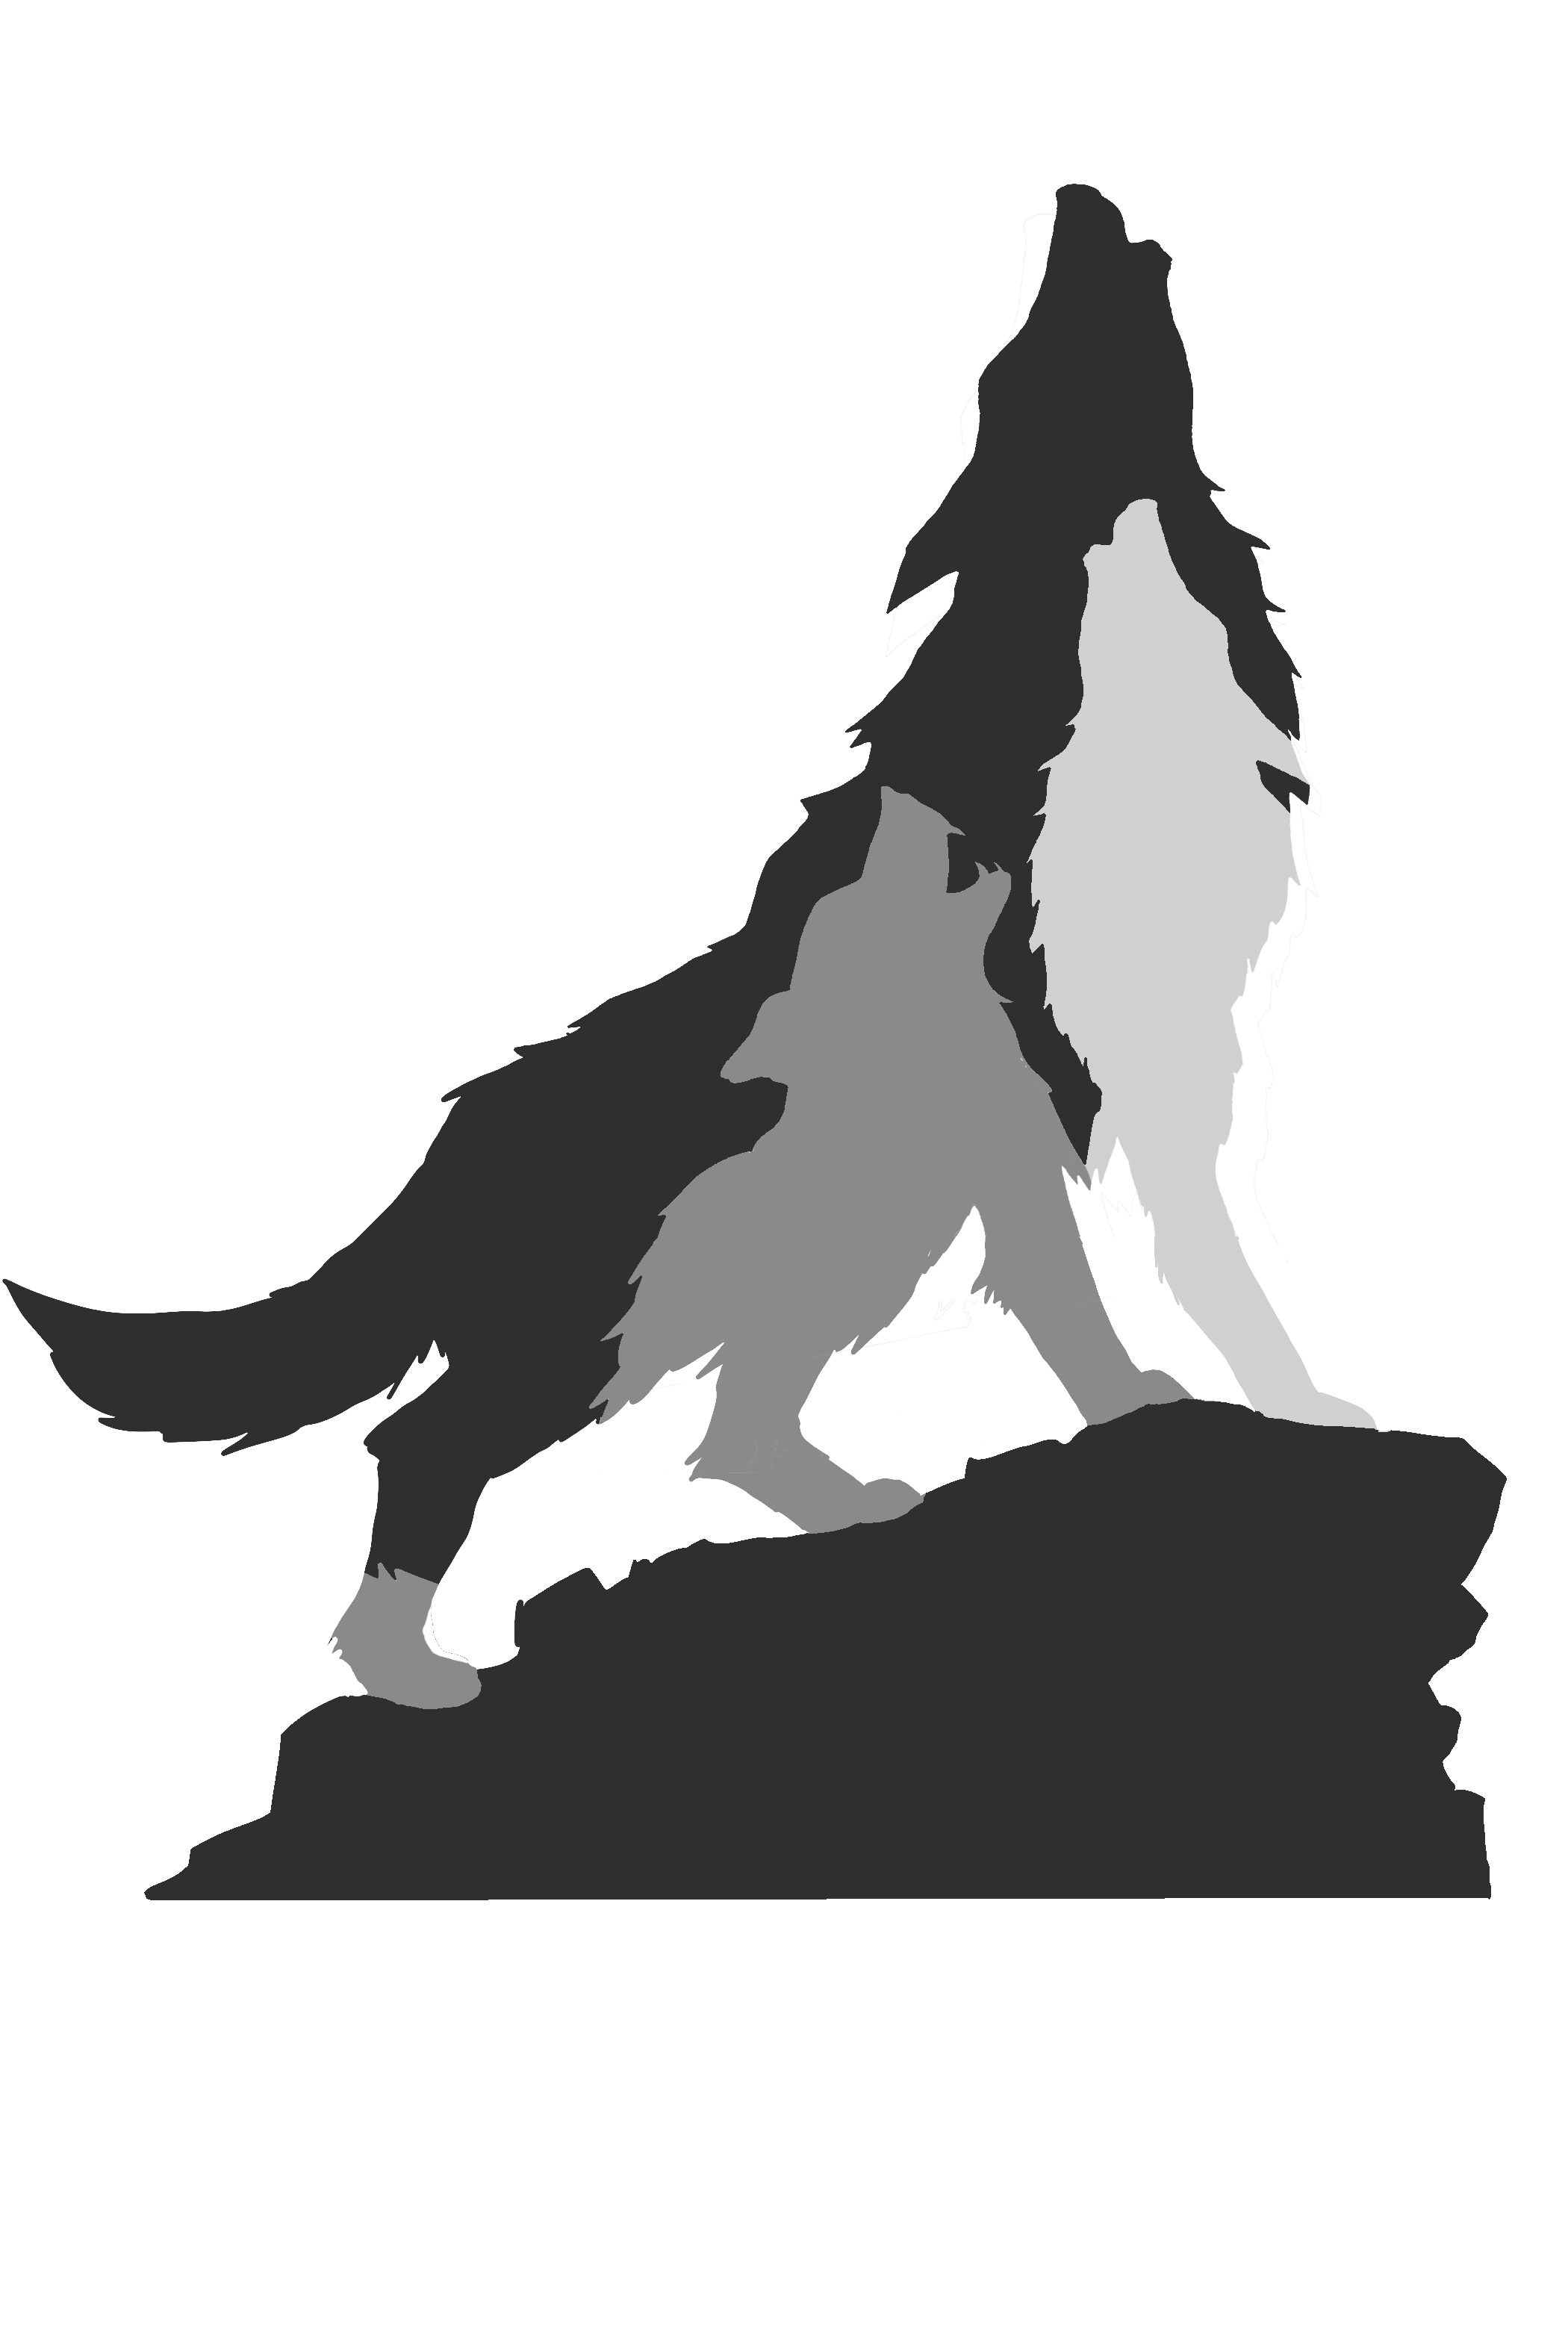 Silhouette Project Wolfpack Dog.